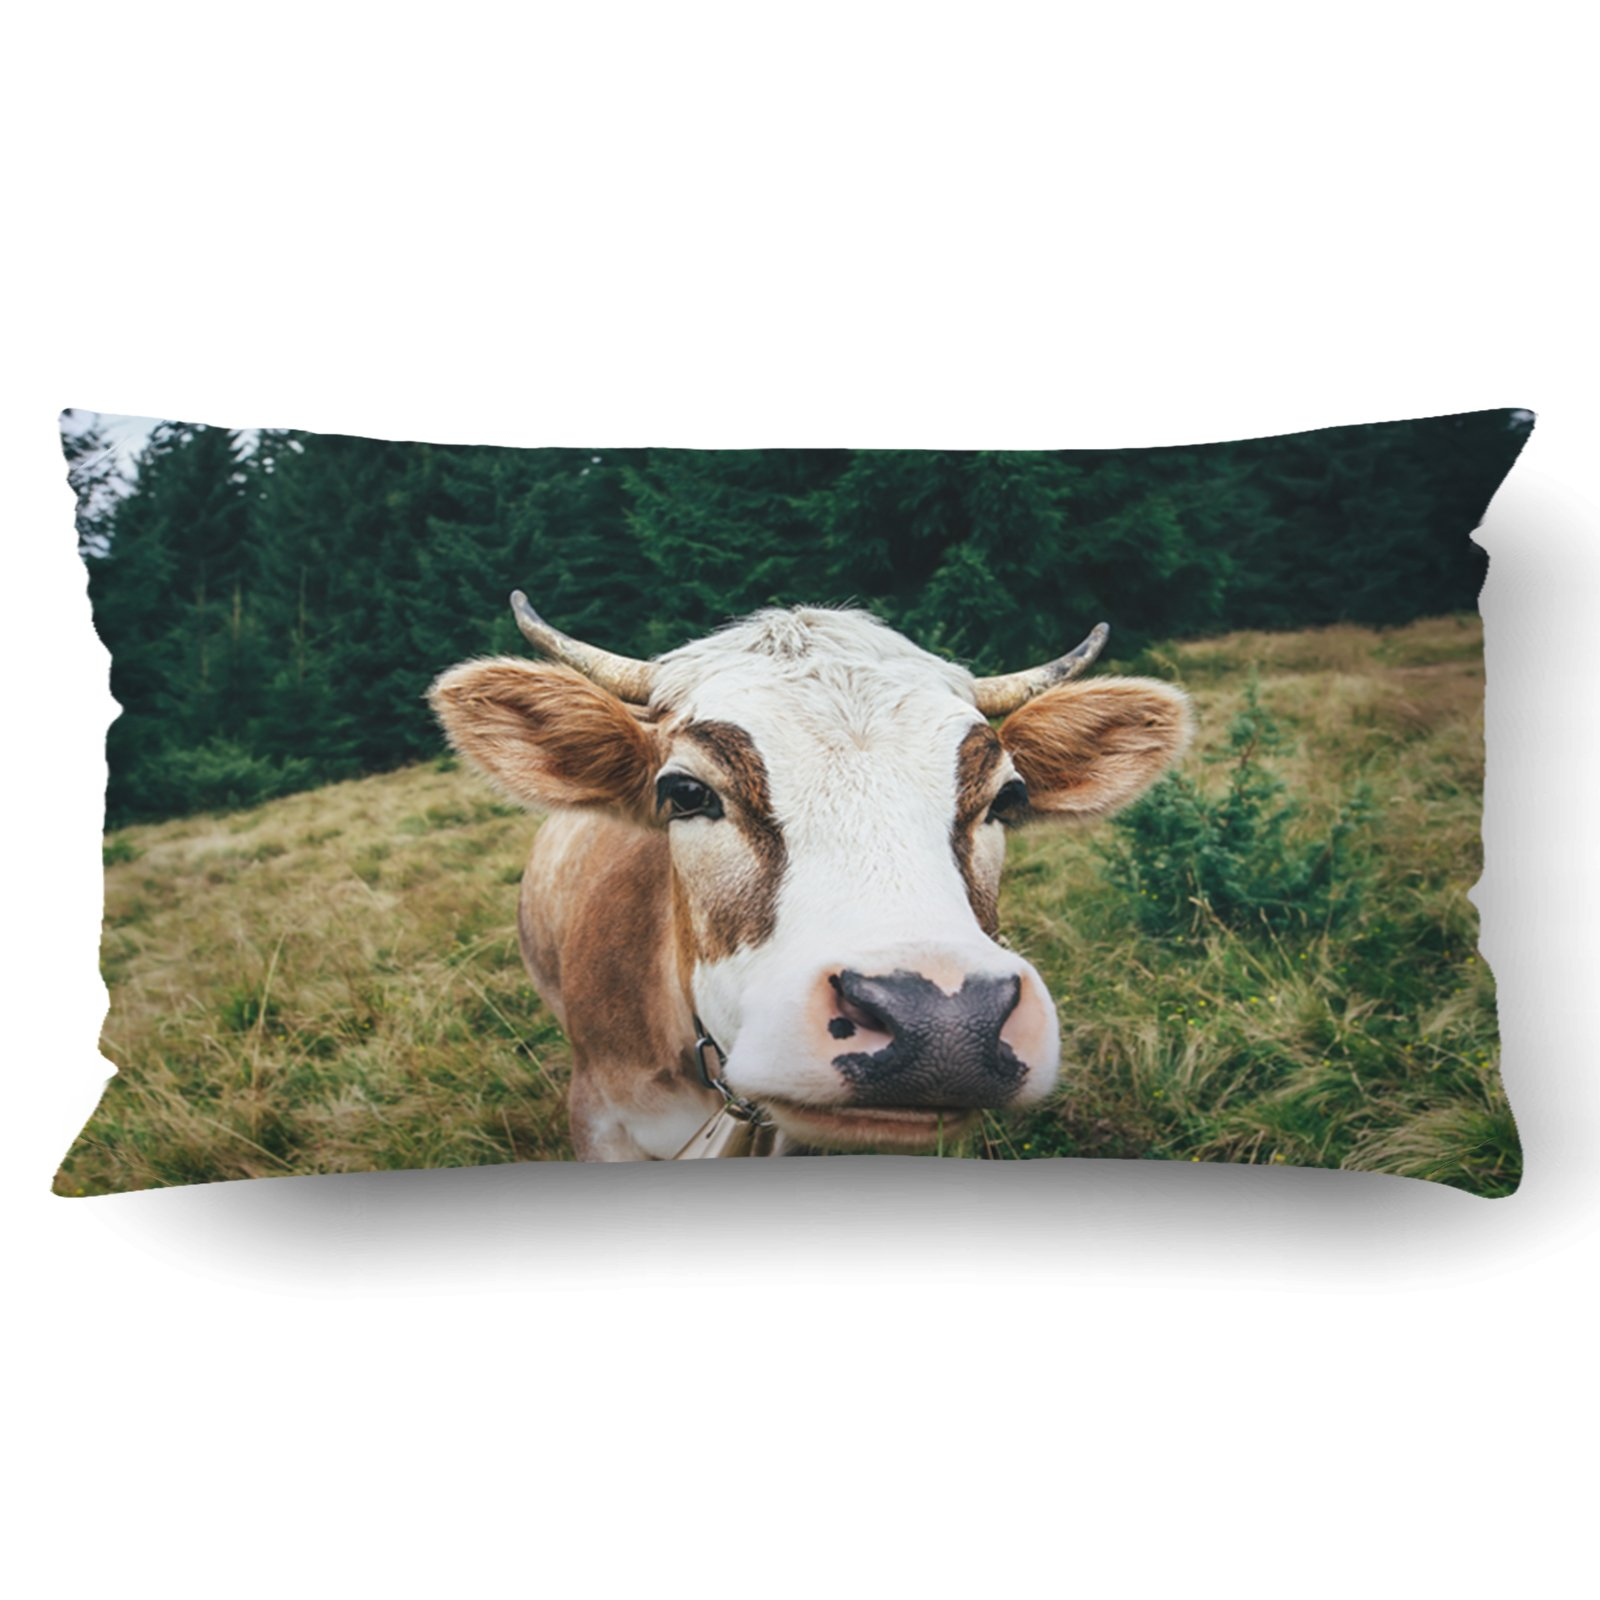 Emvency Pillow Covers Decorative Funny Cow On A Meadow In Forest Animal Bulk With Zippered 20x36 King Pillow Case For Home Bed Couch Sofa Car One Sided